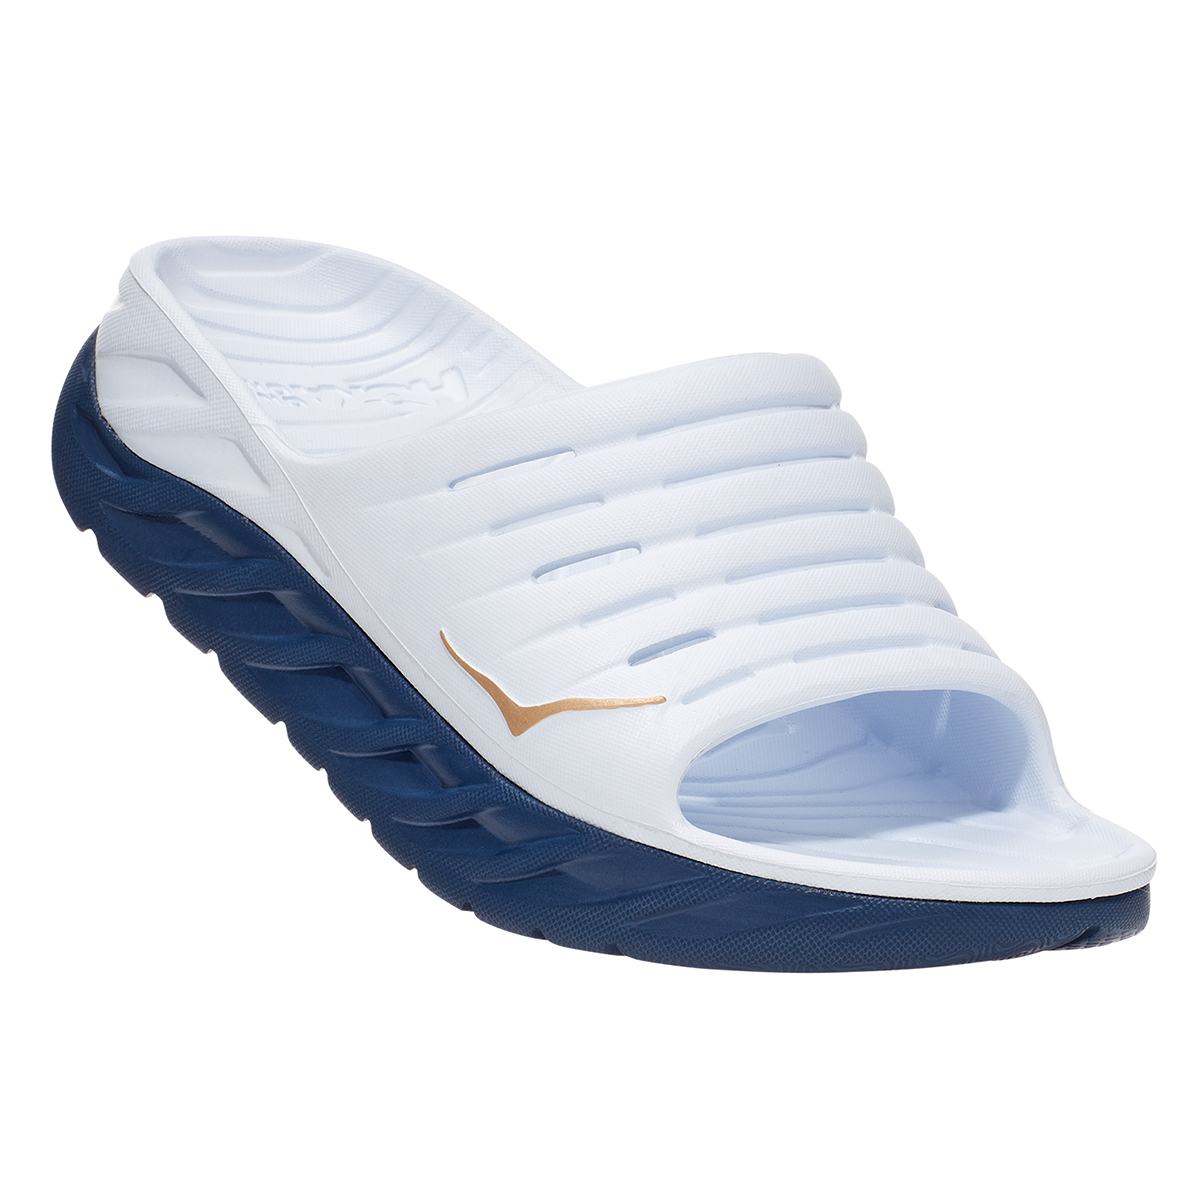 Women's Hoka One One Ora Recovery Slide - Color: White/Vintage - Size: 5 - Width: Regular, White/Vintage, large, image 6